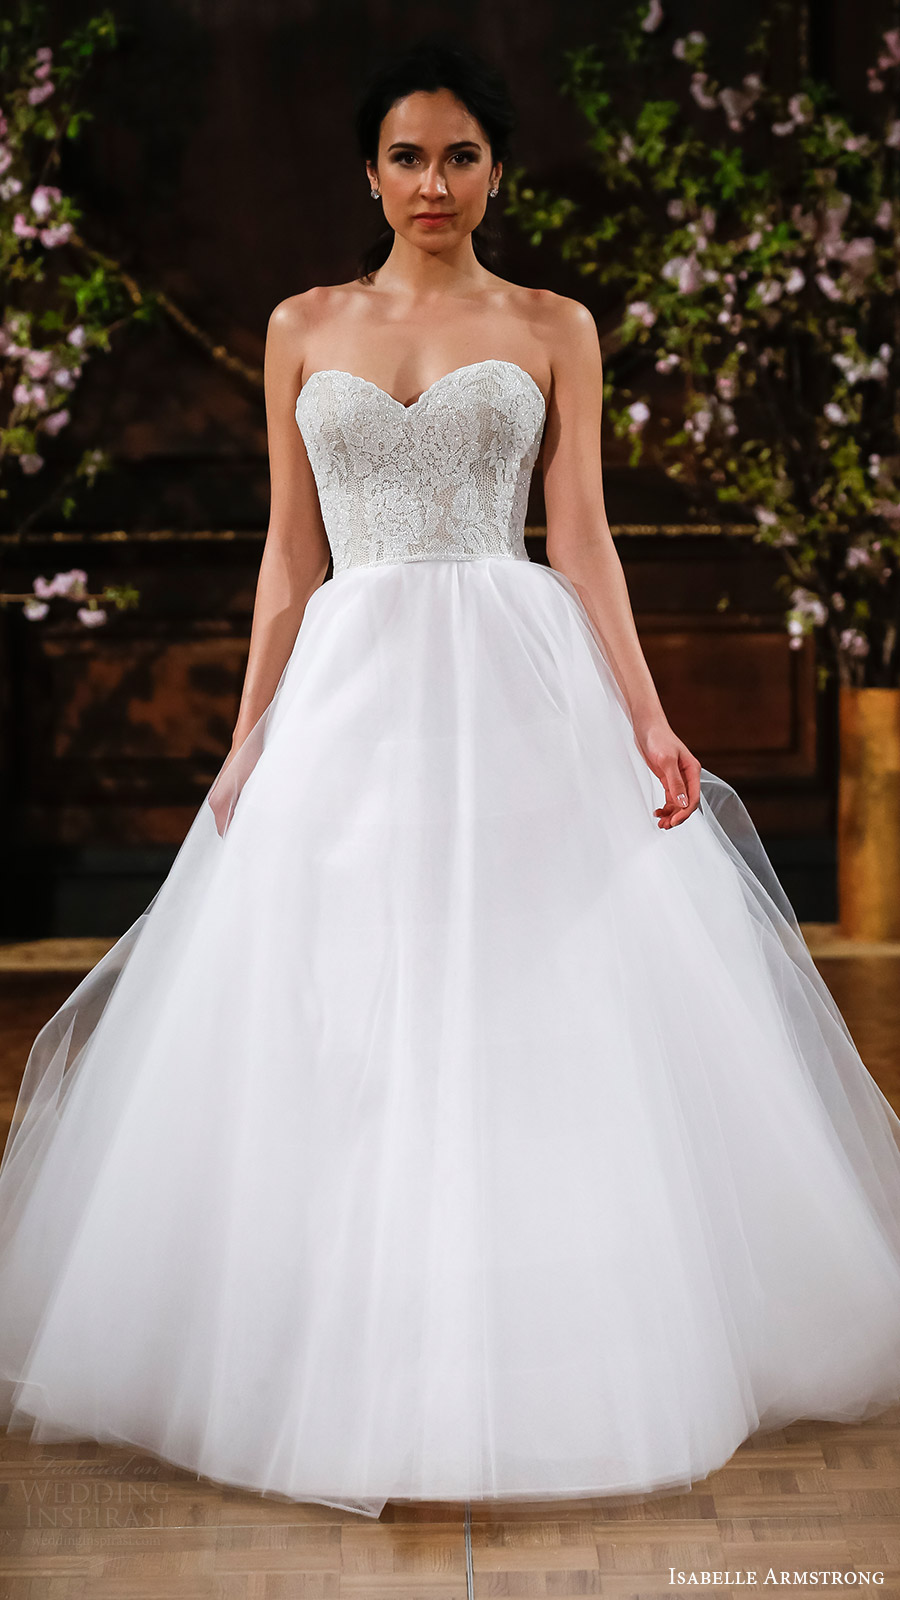 Isabelle armstrong spring 2017 wedding dresses wedding for Ball wedding dresses 2017